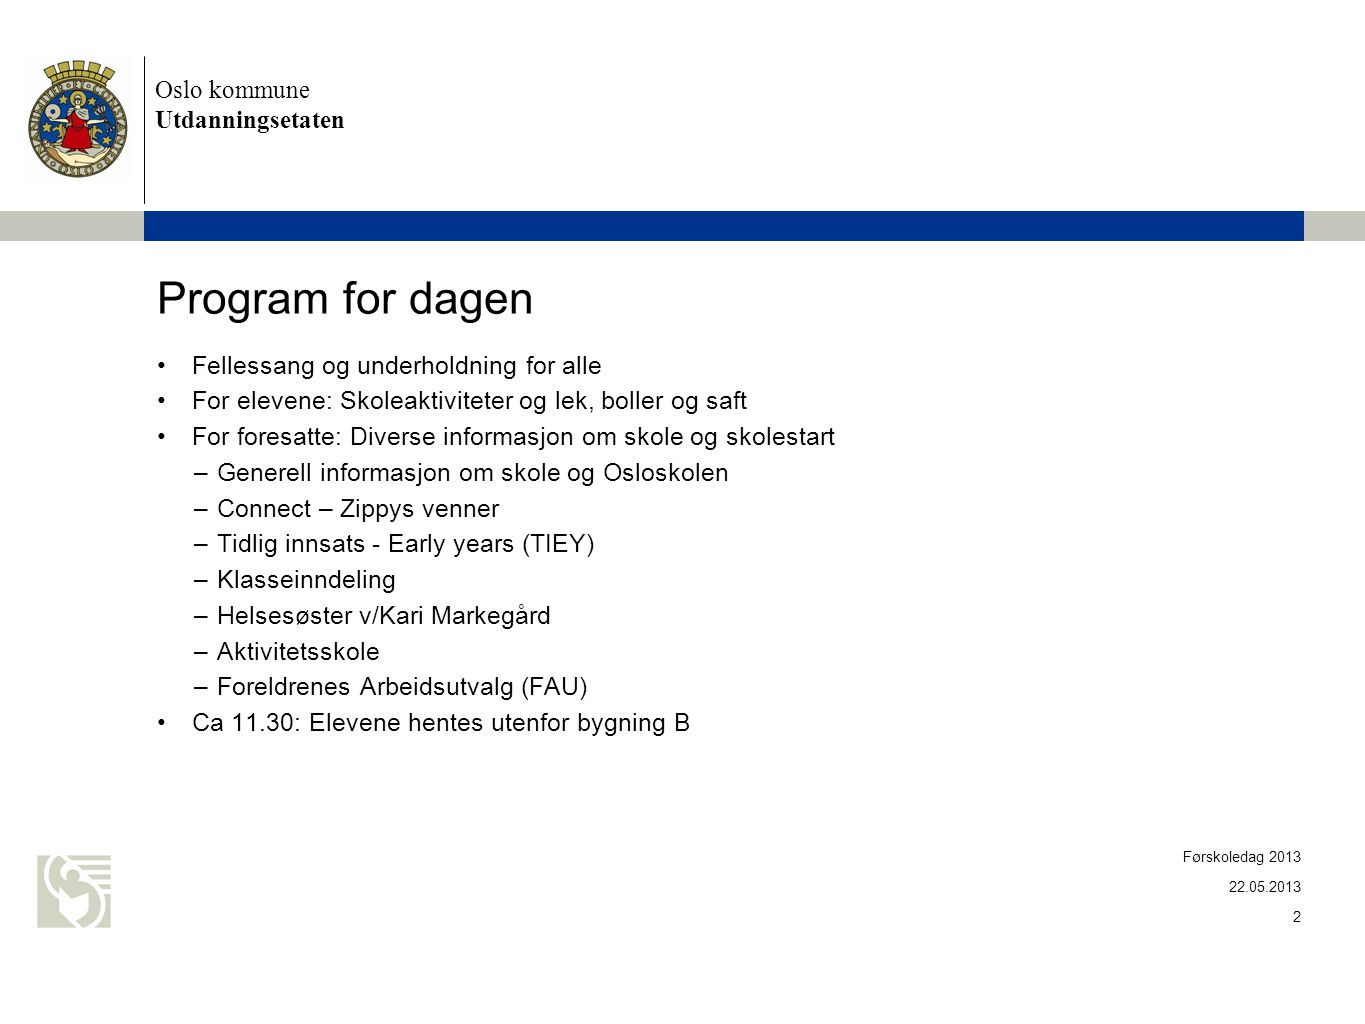 Program for dagen Oslo kommune Utdanningsetaten